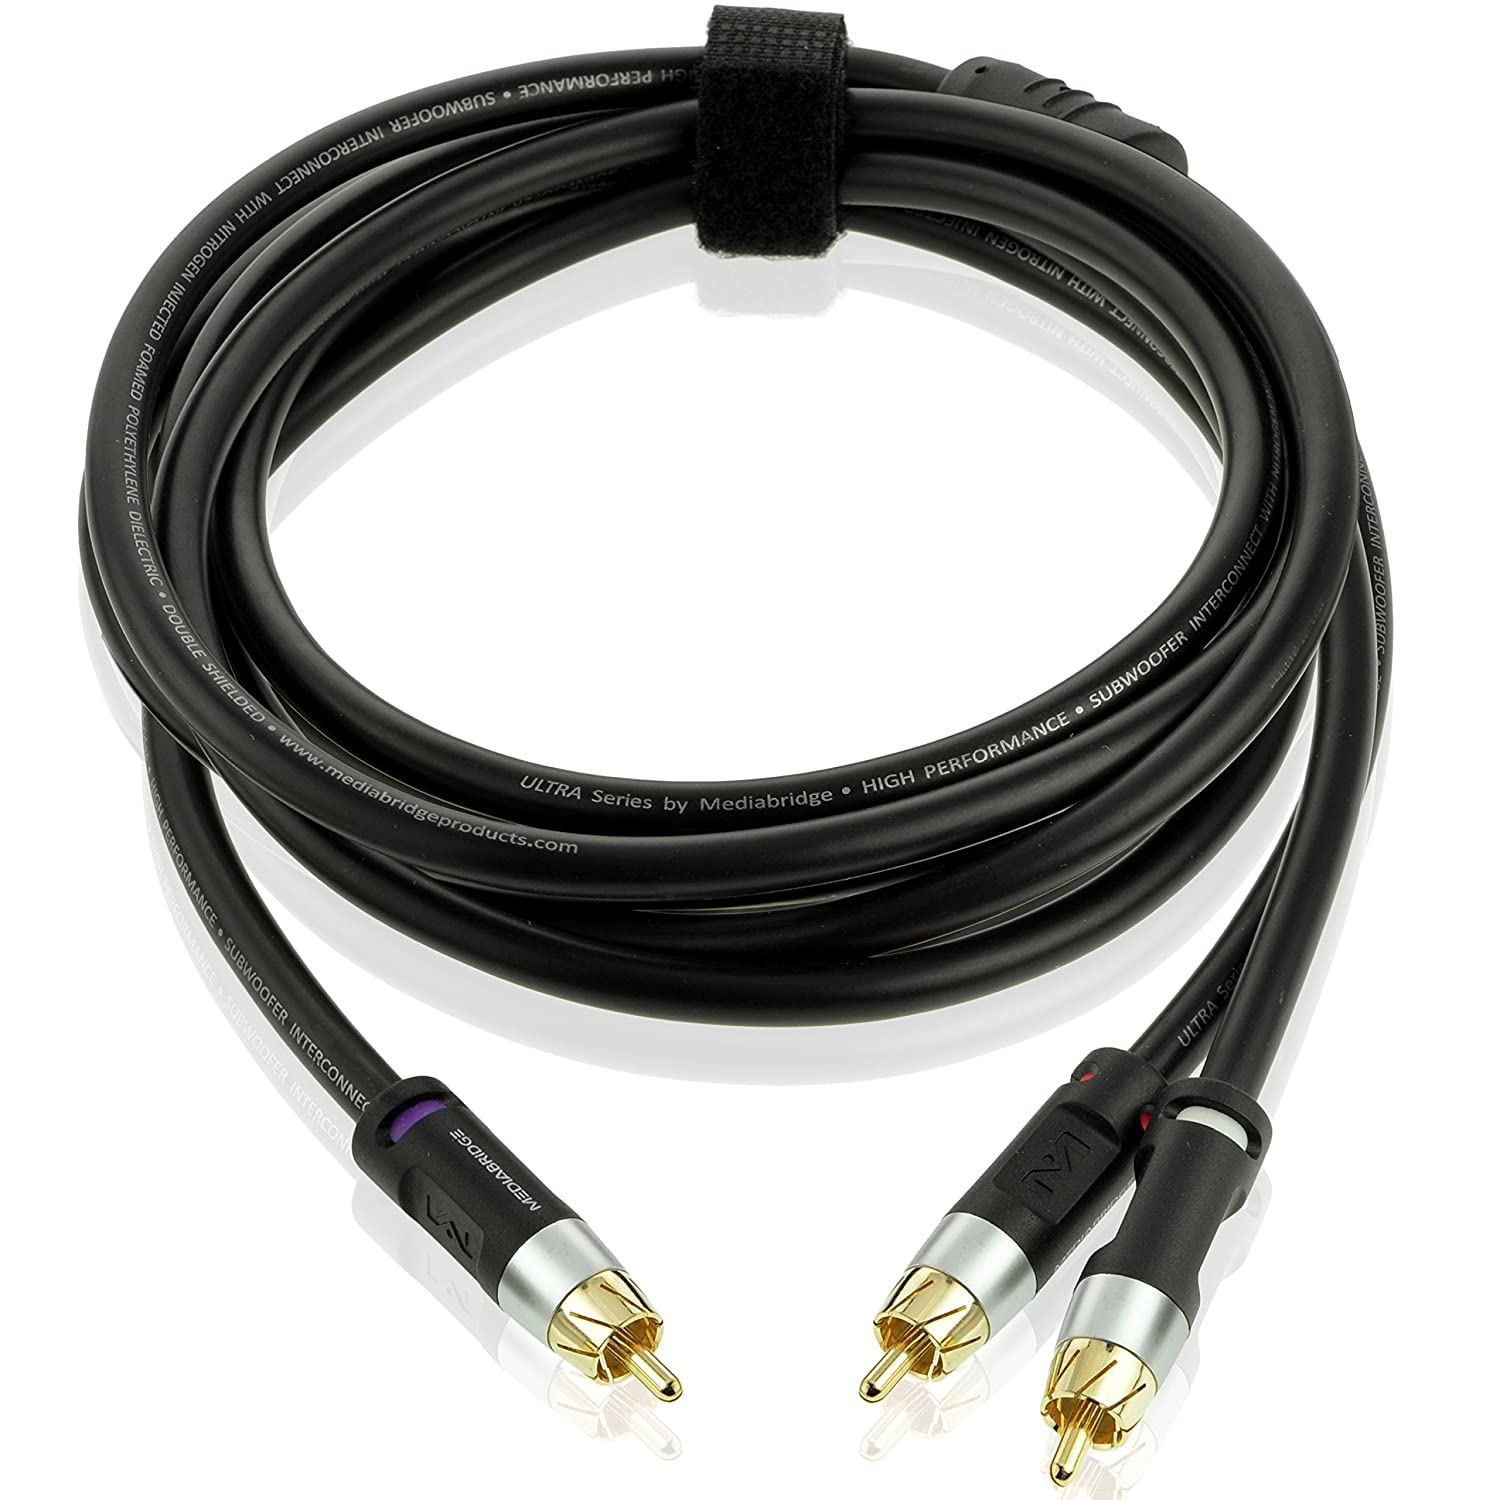 Mediabridge ULTRA Series RCA Y-Adapter (8 Feet) - 1-Male to 2-Male for Digital Audio or Subwoofer - Dual Shielded with RCA to RCA Gold-Plated Connectors - Black - (Part# CYA-1M2M-8B)